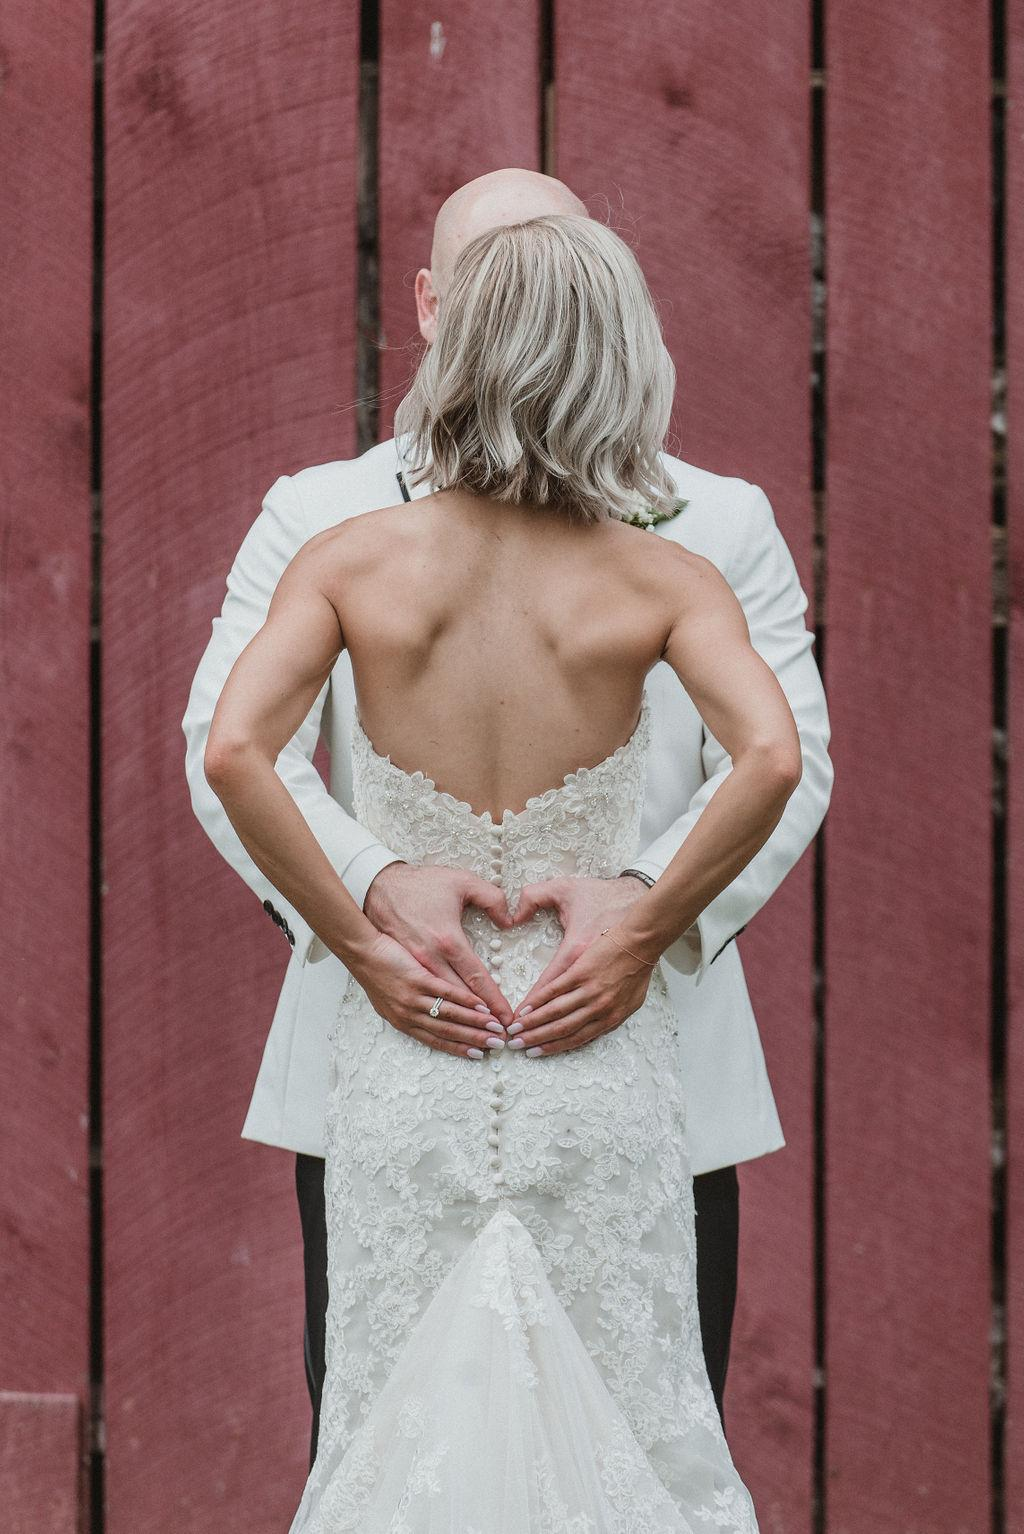 """After a year of wedding planning, it was worth it,"" Summer says. (Image: Chris Ferenzi)"